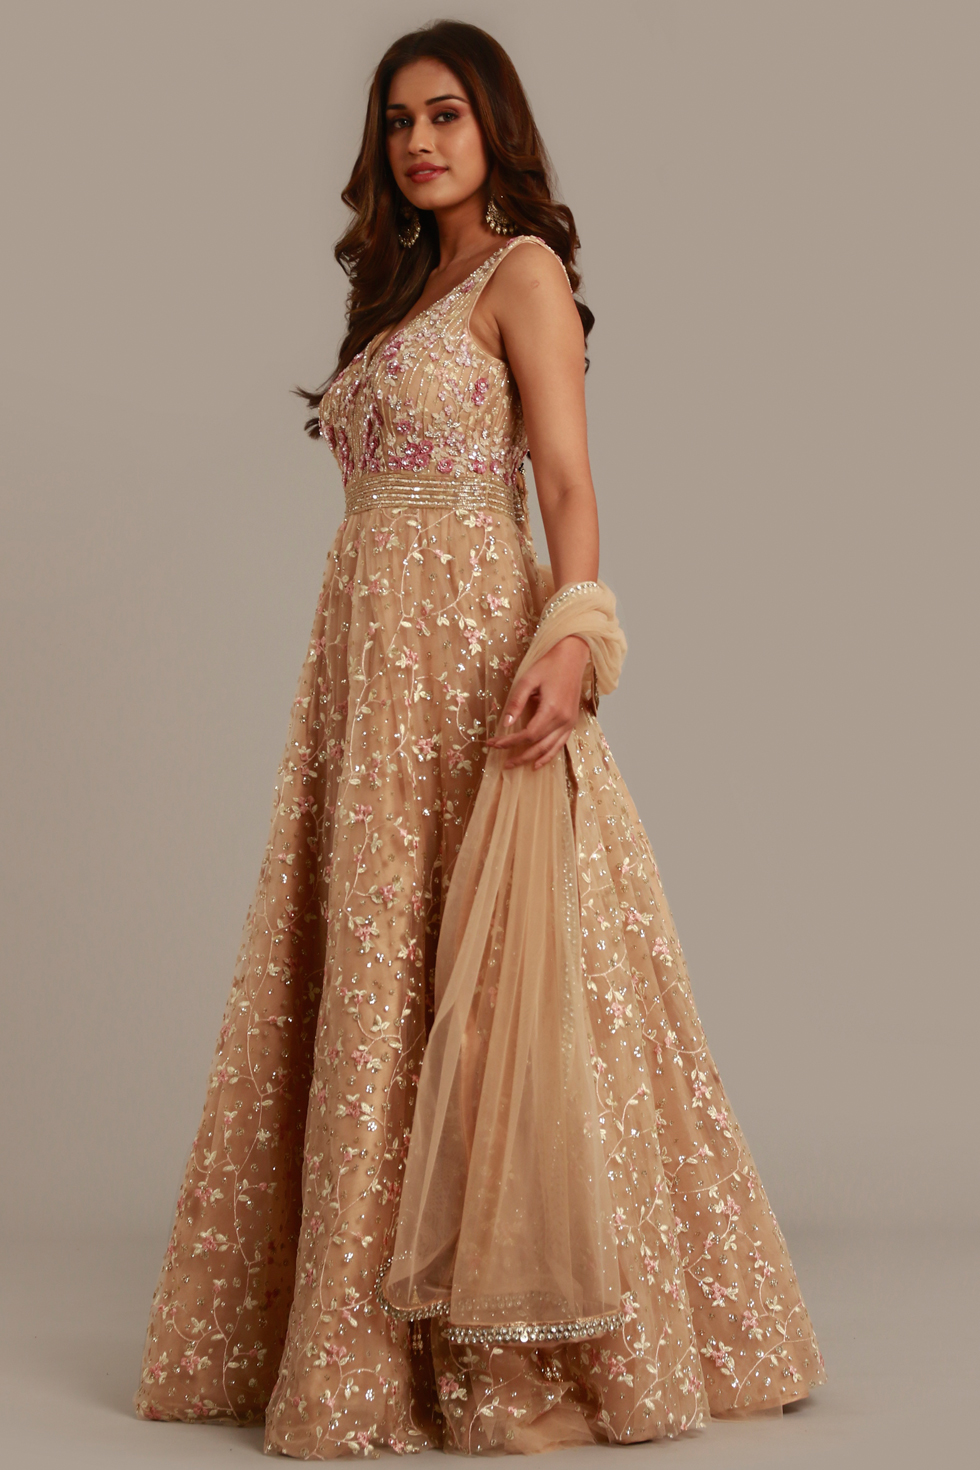 Gold beige Anarkali gown set with contrast embroidery, matching dupatta and gold and silver embellishments